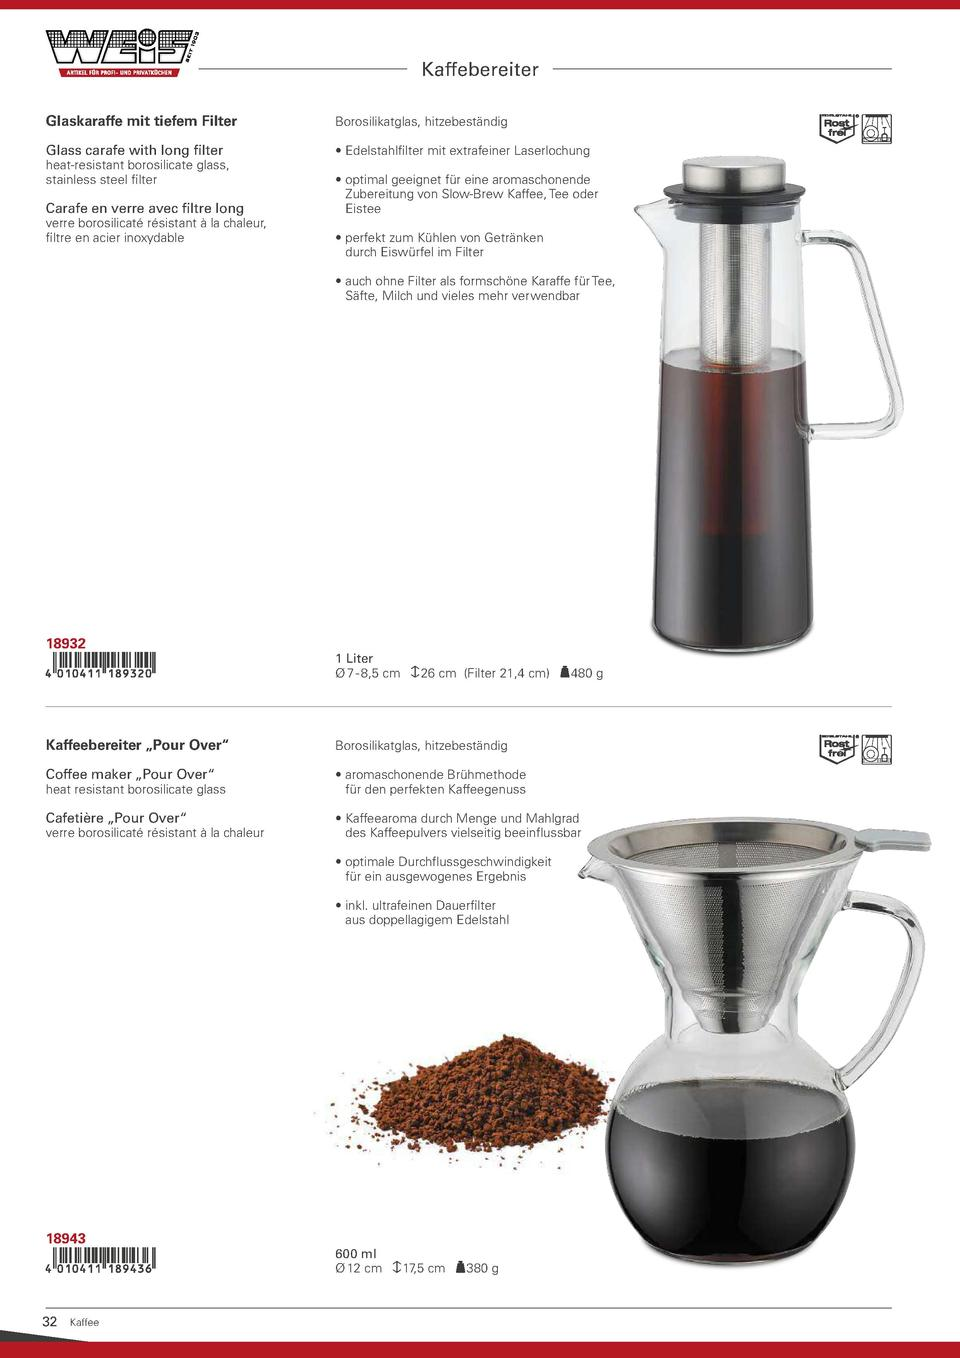 Kaffebereiter Glaskaraffe mit tiefem Filter  Borosilikatglas, hitzebest  ndig  Glass carafe with long filter      Edelstah...